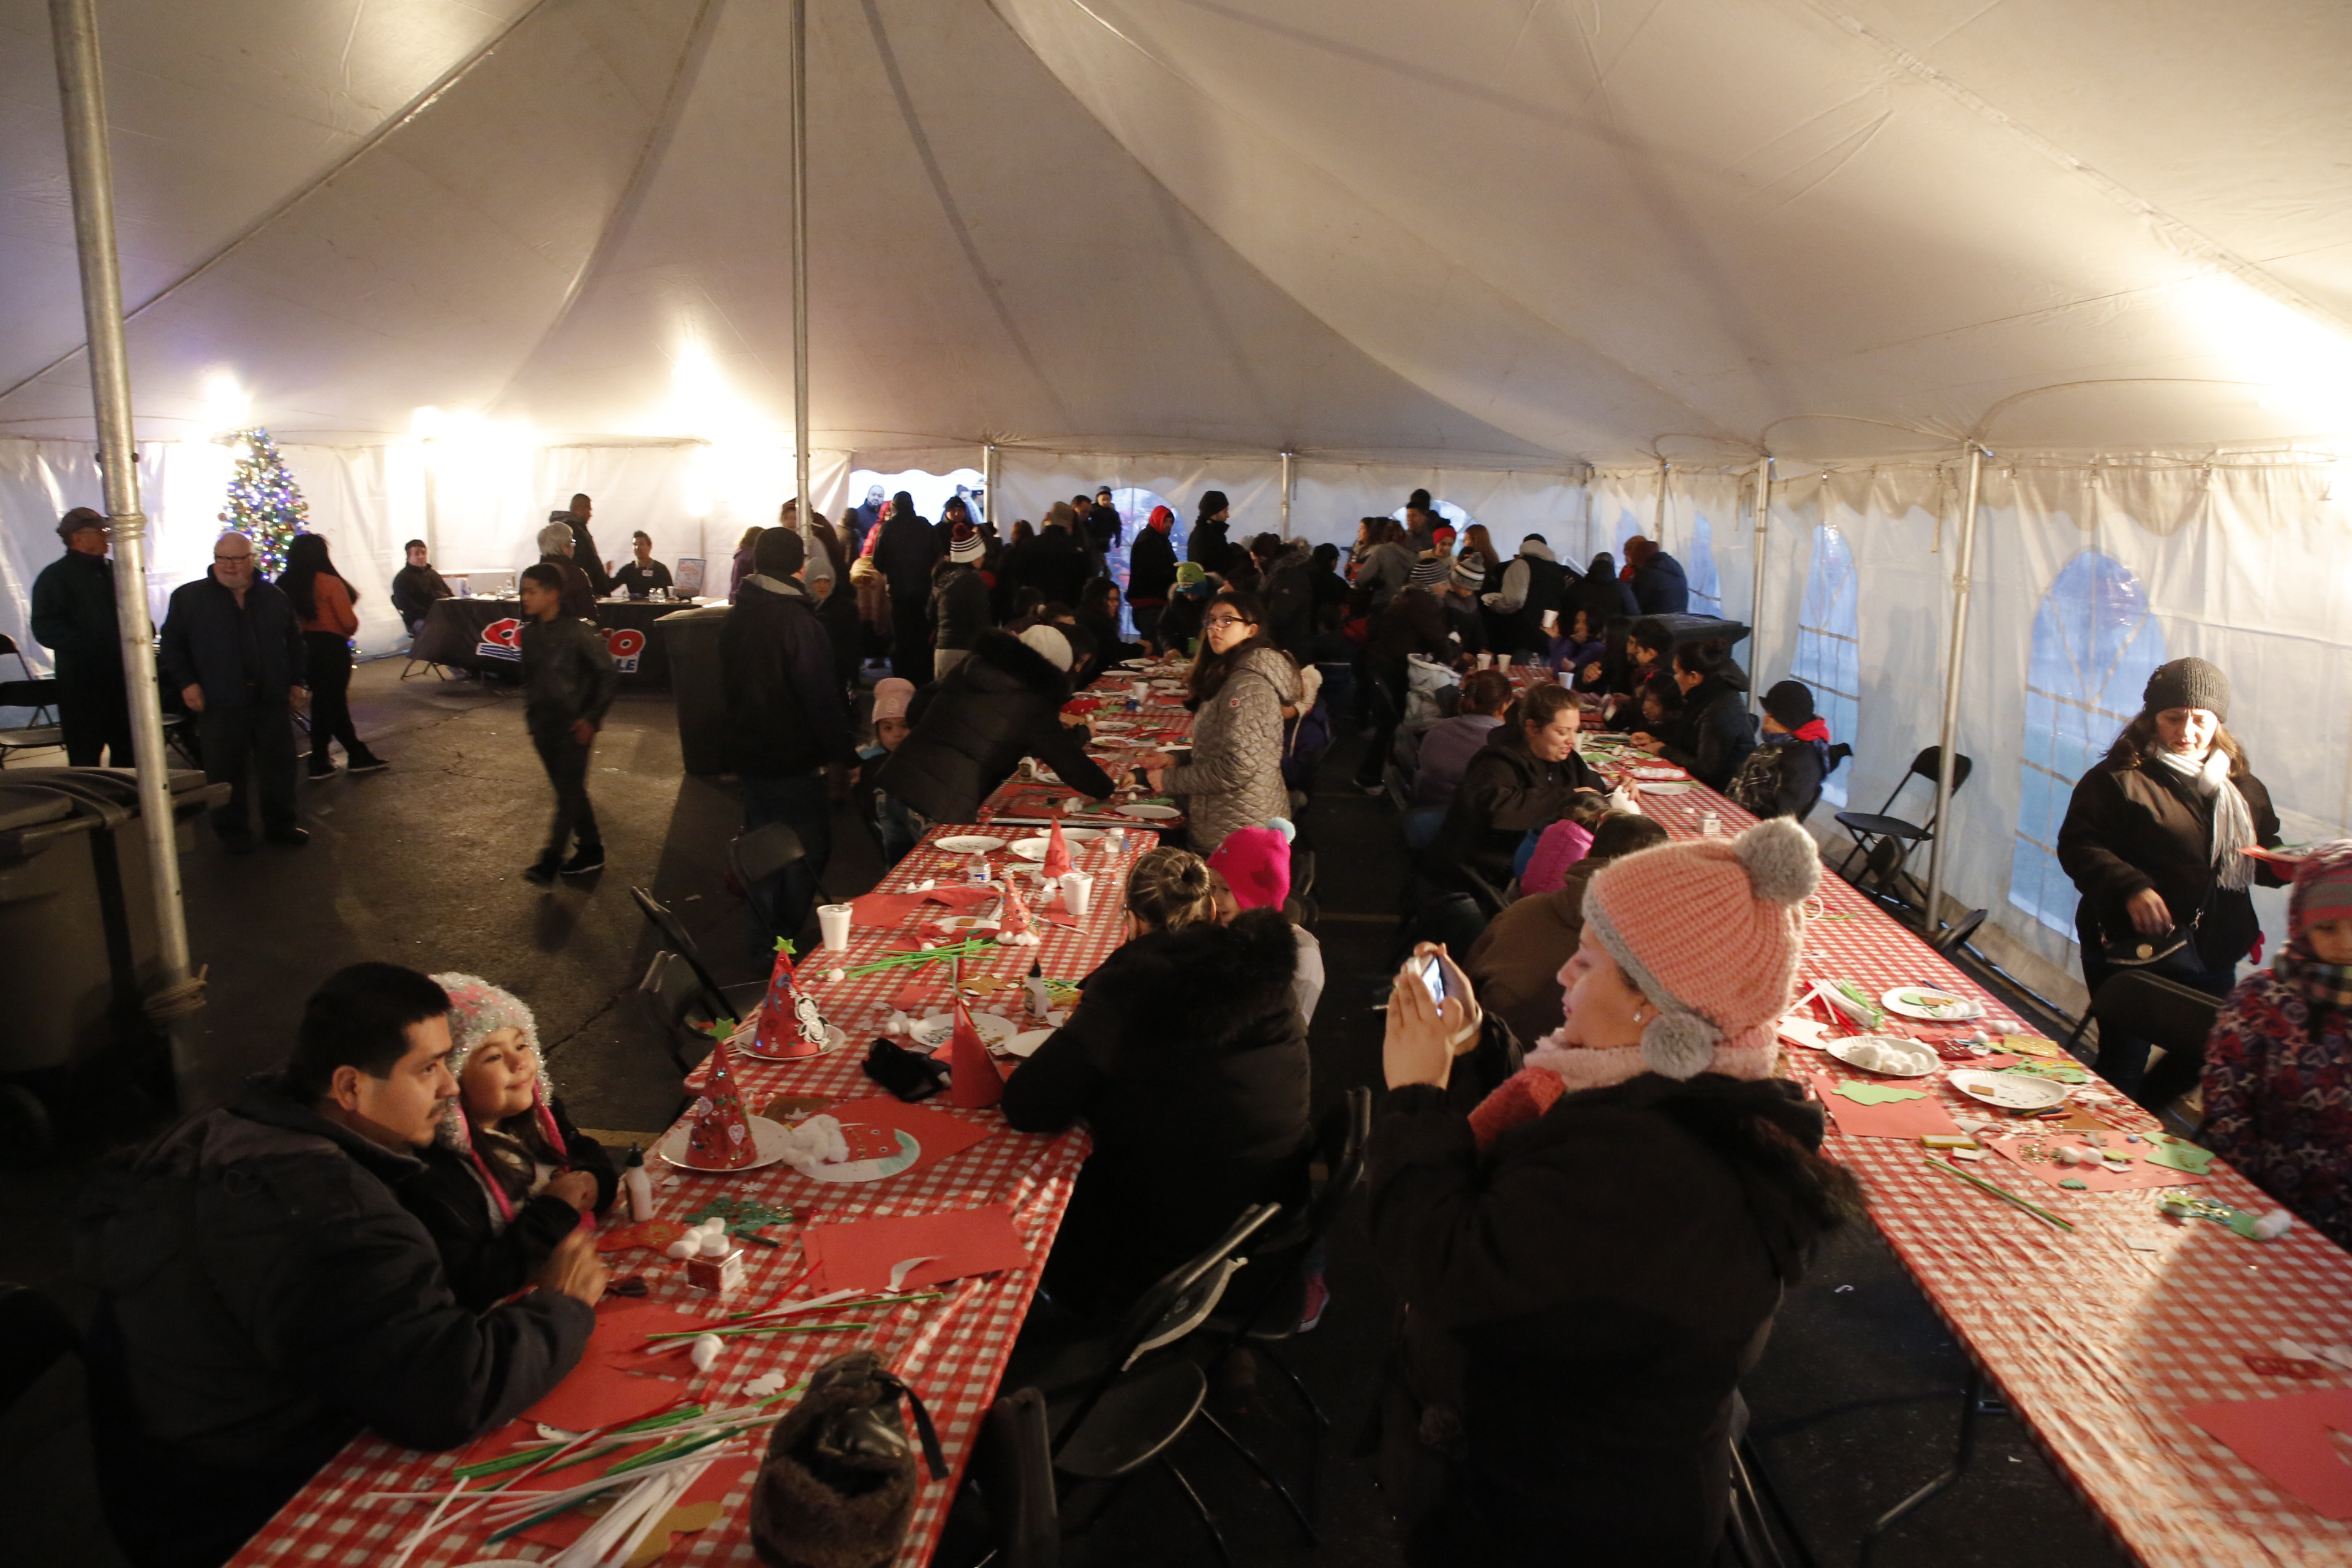 this event officially starts both the christmas celebrations throughout cicero and the ice skating season at the bobby hull community ice rink